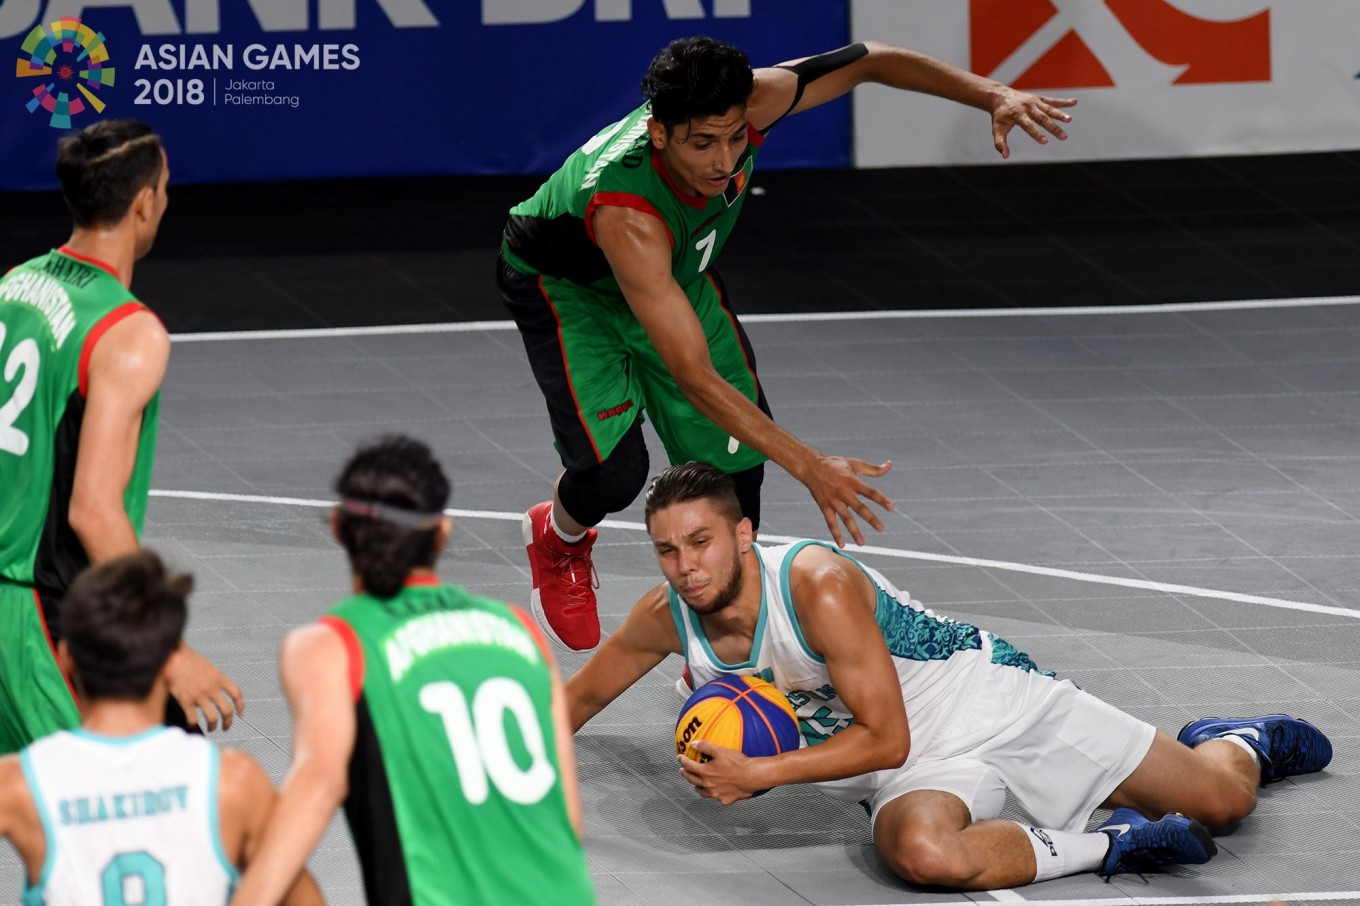 Afghanistan basketball player Mir Abdul Wahab Mirzad (right) tries to keep the ball away from Kazakhstan's Vassily Belozor during the men's 3x3 competition at the Basketball Hall of the GBK in Senayan, Central Jakarta, on Wednesday, August. 22. Inasgoc via Antara/ Wendra Ajistyatama